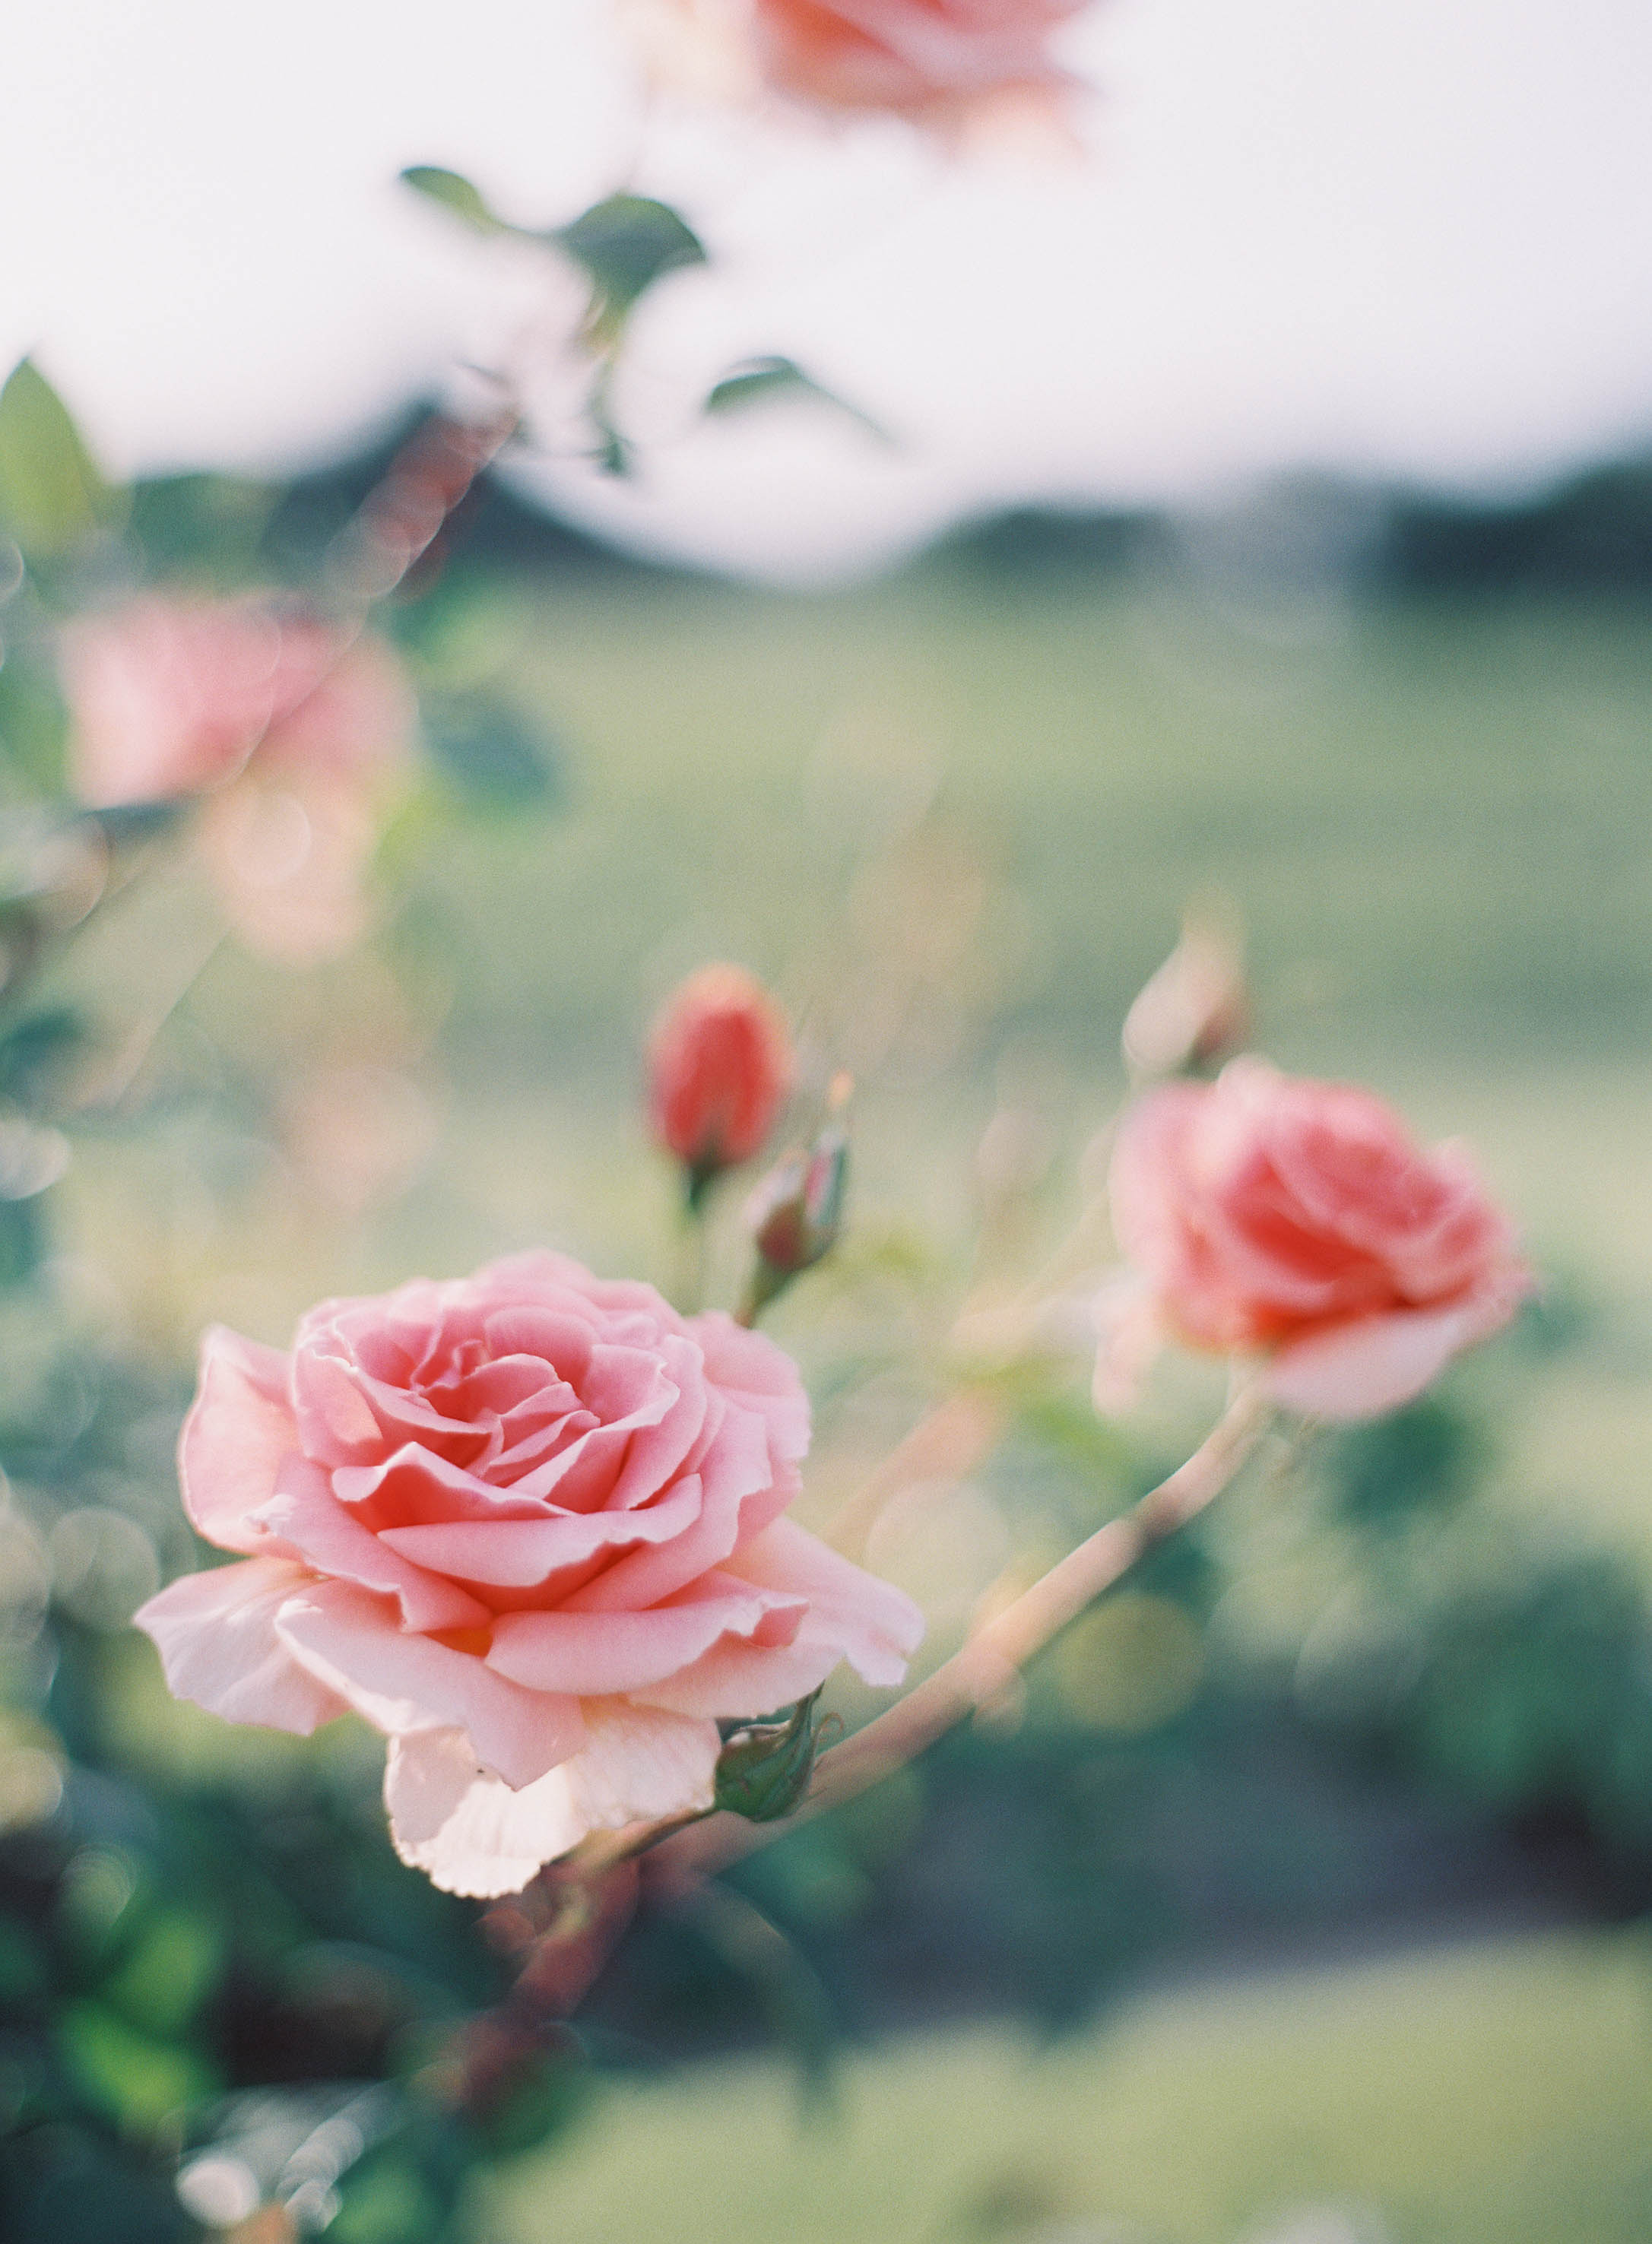 7. - Garden Roses. As opposed to popular belief, roses are very hardy and don't need much water. That's why they're grown around wineries and grapes. My favorite garden roses are Iceberg Roses which can be planted in groves or on a trellis.